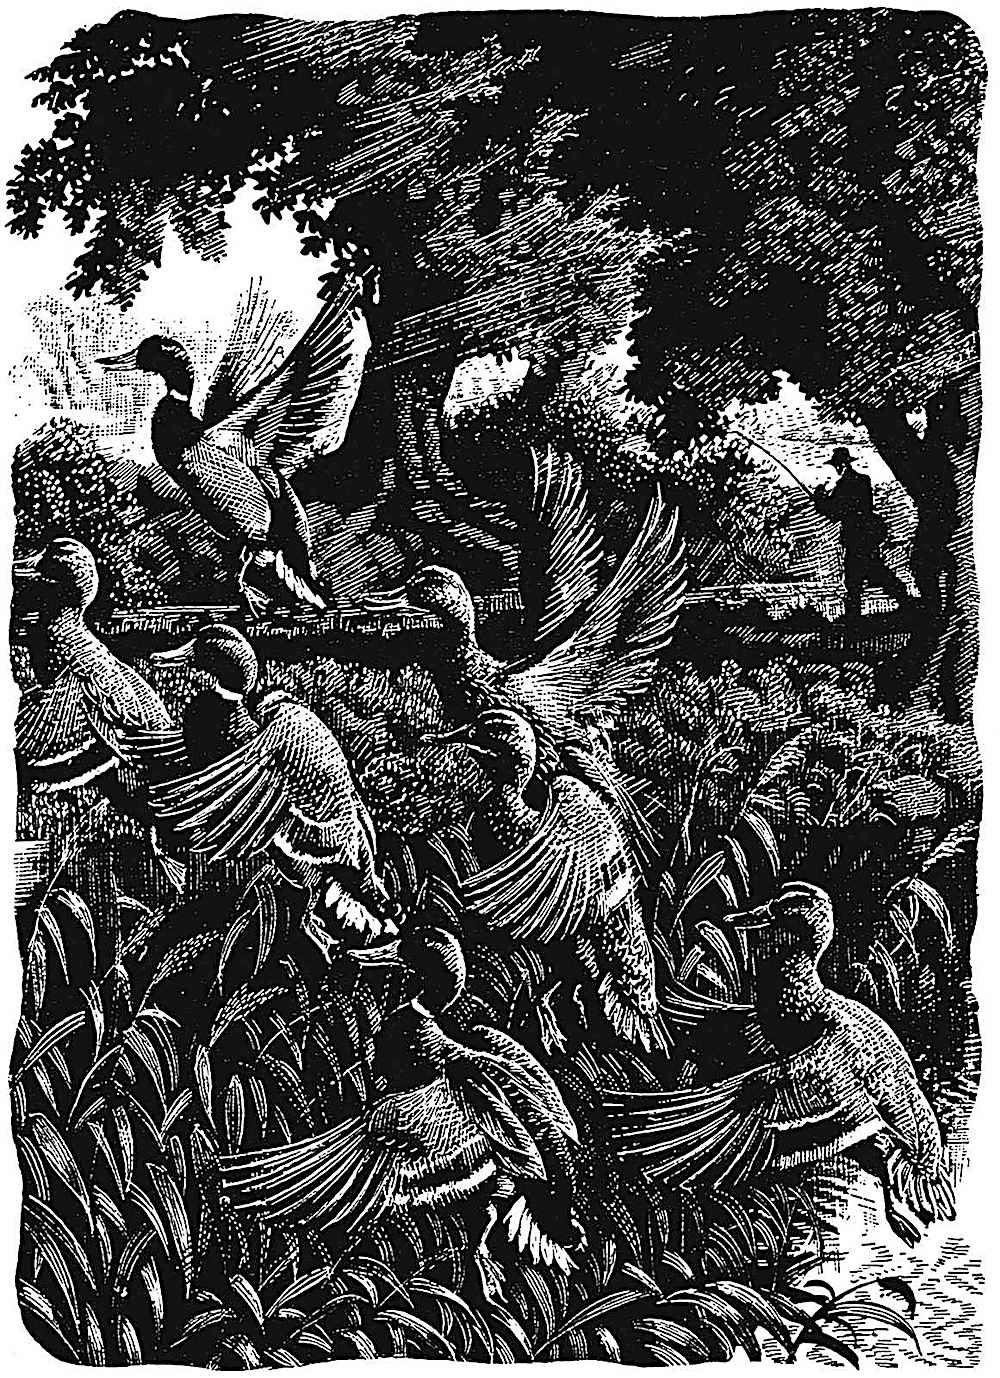 a Charles F. Tunnicliffe illustration of ducks rising from a marsh